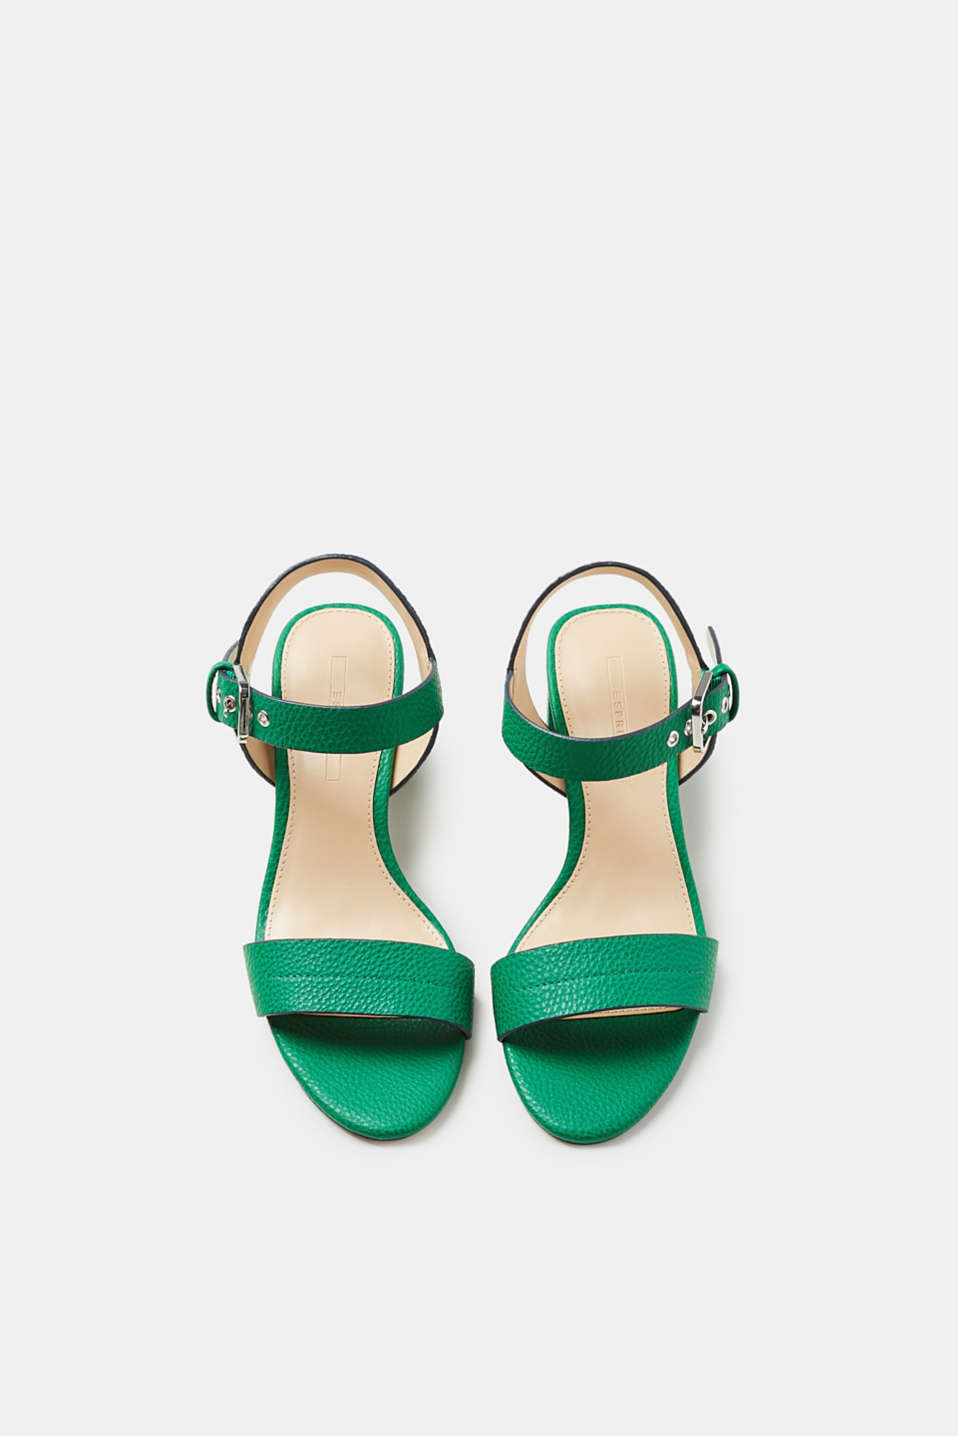 Sandals with a block heel, in faux leather